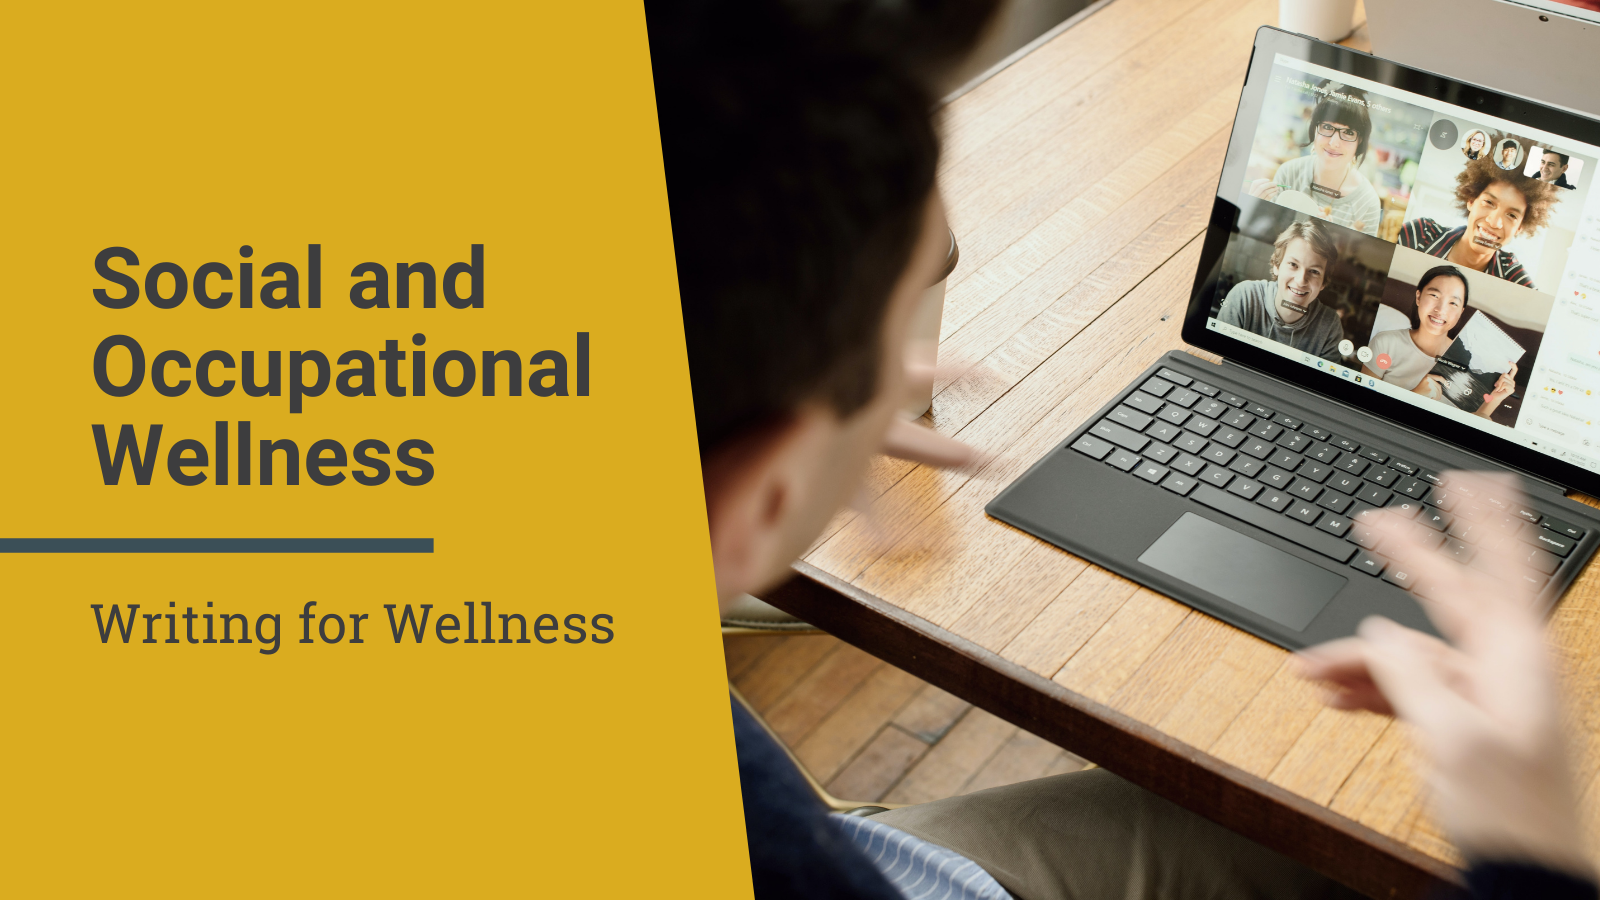 Writing for Social and Occupational wellness blog banner with image of someone participating in a virtual meeting